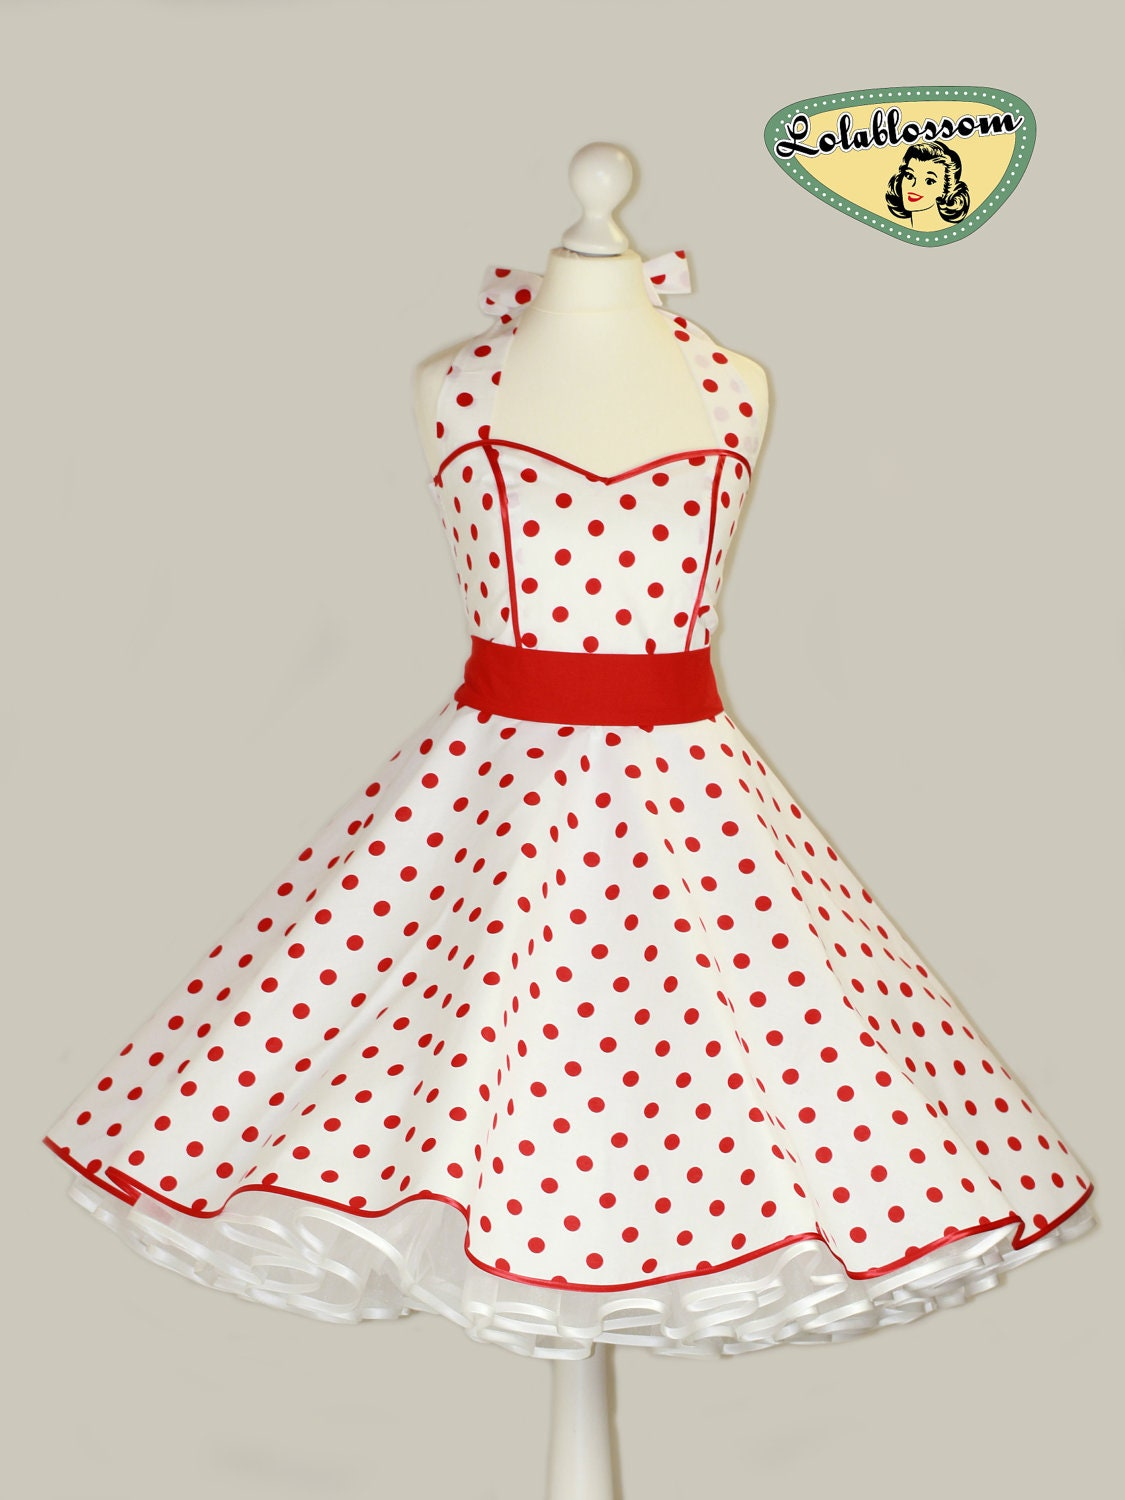 Vintage white dress ith red polka dots